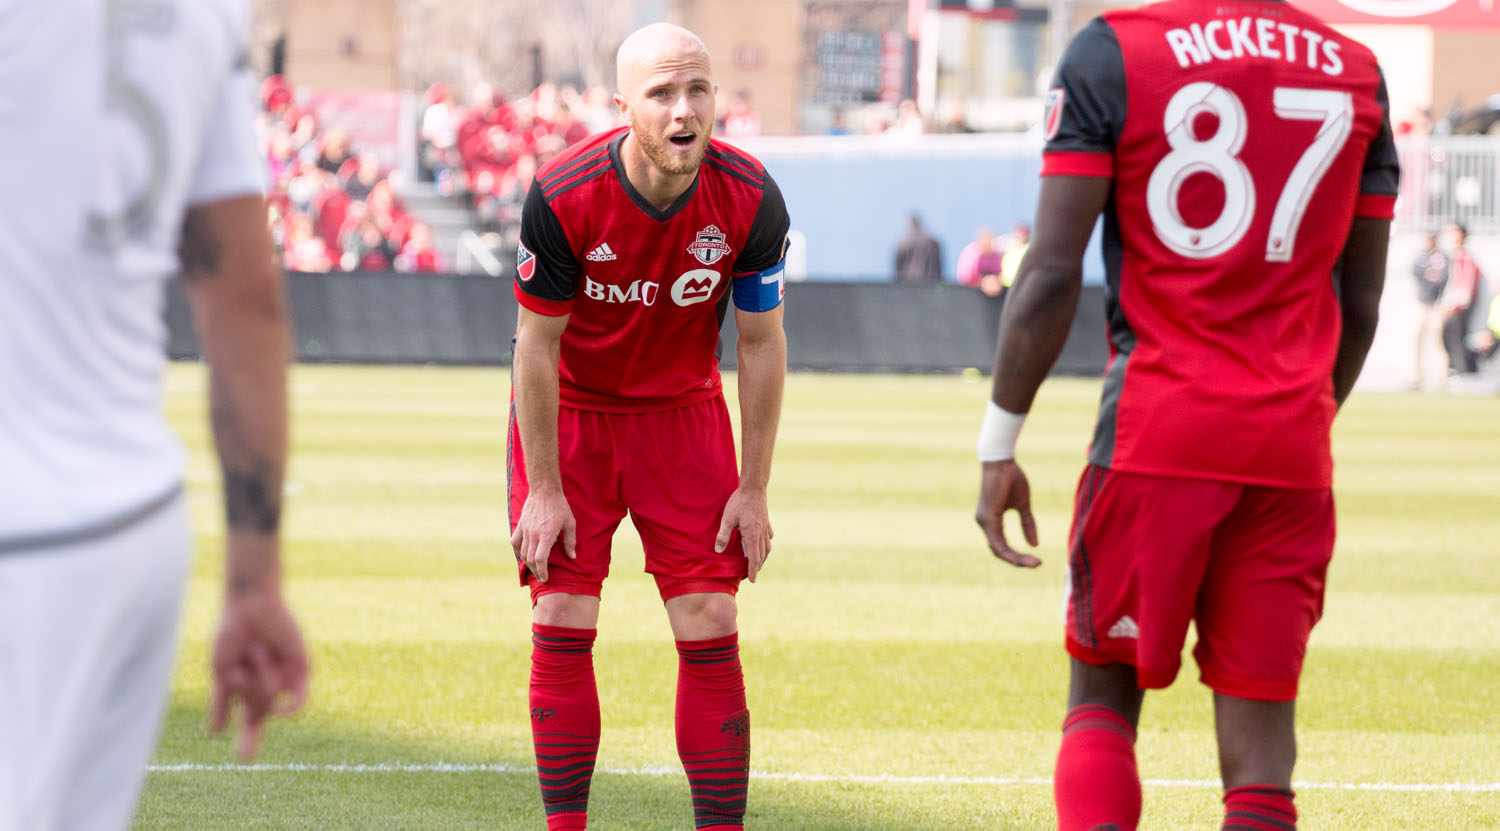 Michael Bradley in disbelief after a very close chance on goal by a Toronto FC teammate.Image by Dennis Marciniak of denMAR Media.